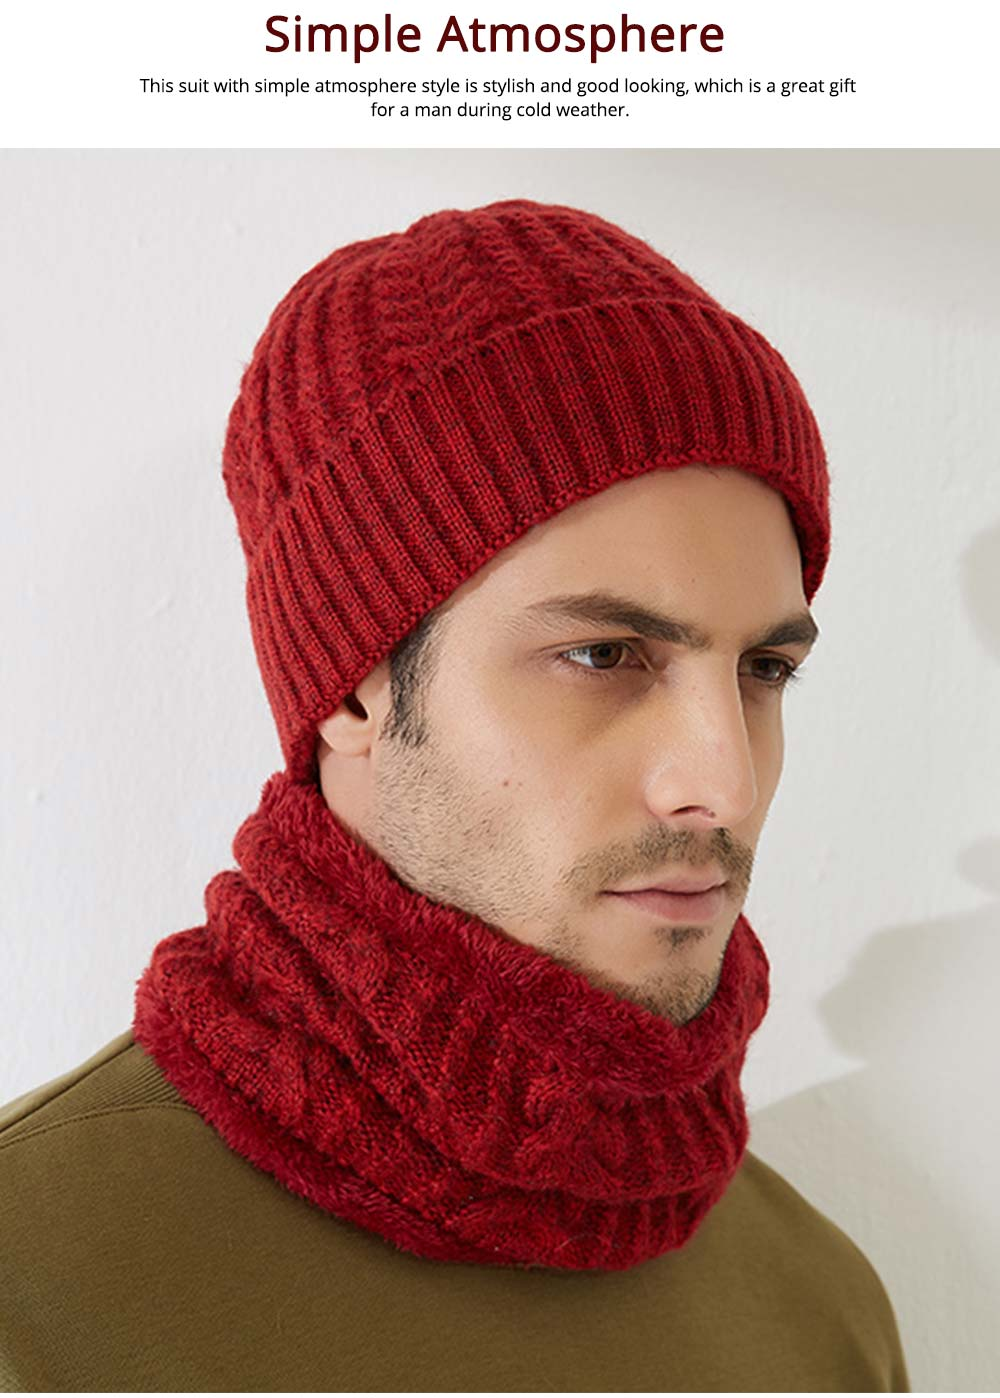 Ultra-soft Plush Knitted Hat Cap Cravat, Autumn Winter Thicken Men Outdoor Scarf Cap Suit with Smooth Plush 5